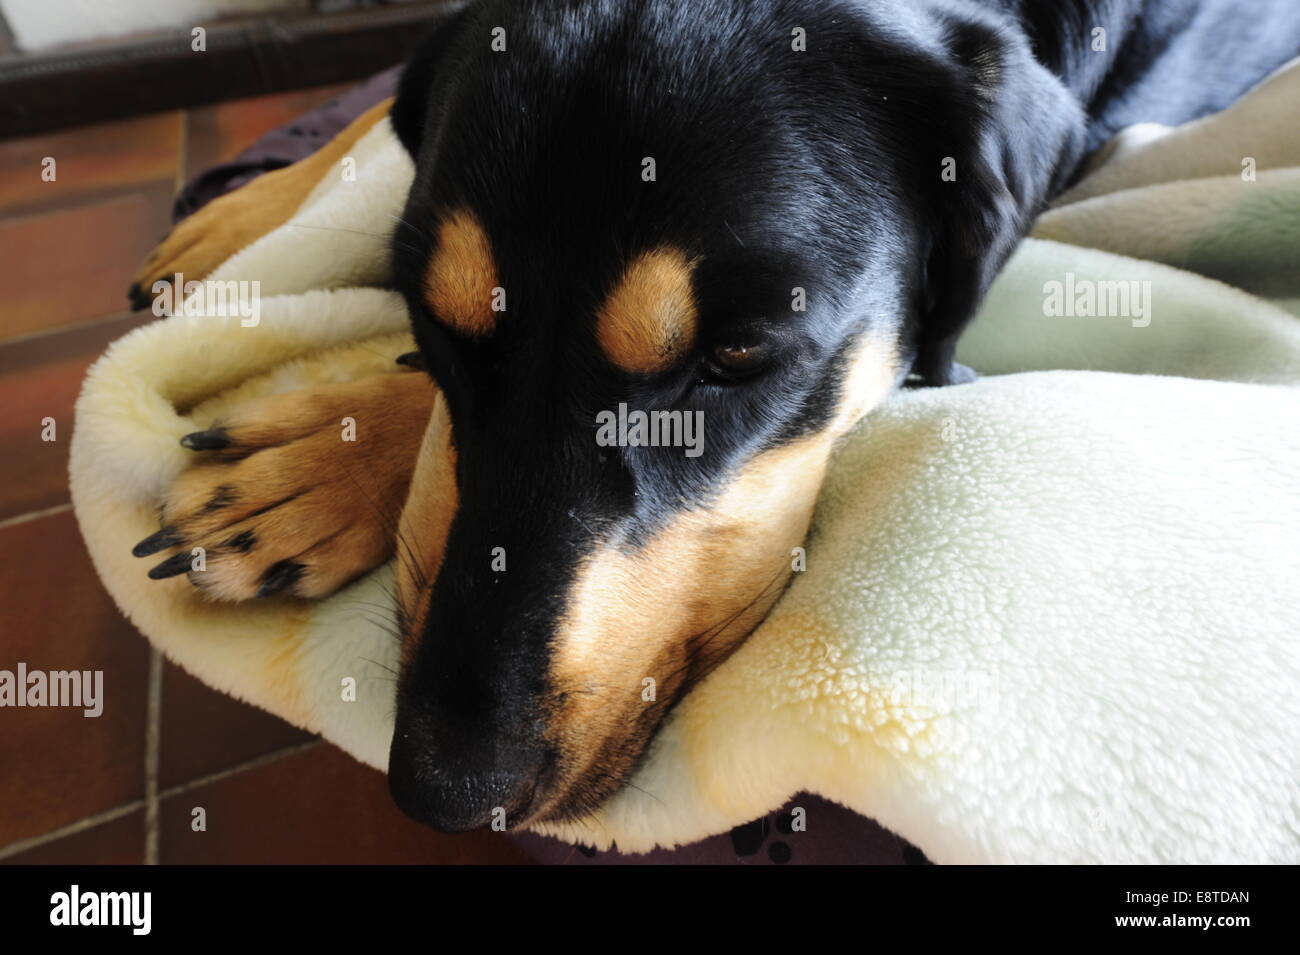 A black and tan dog lying on bed - Stock Image